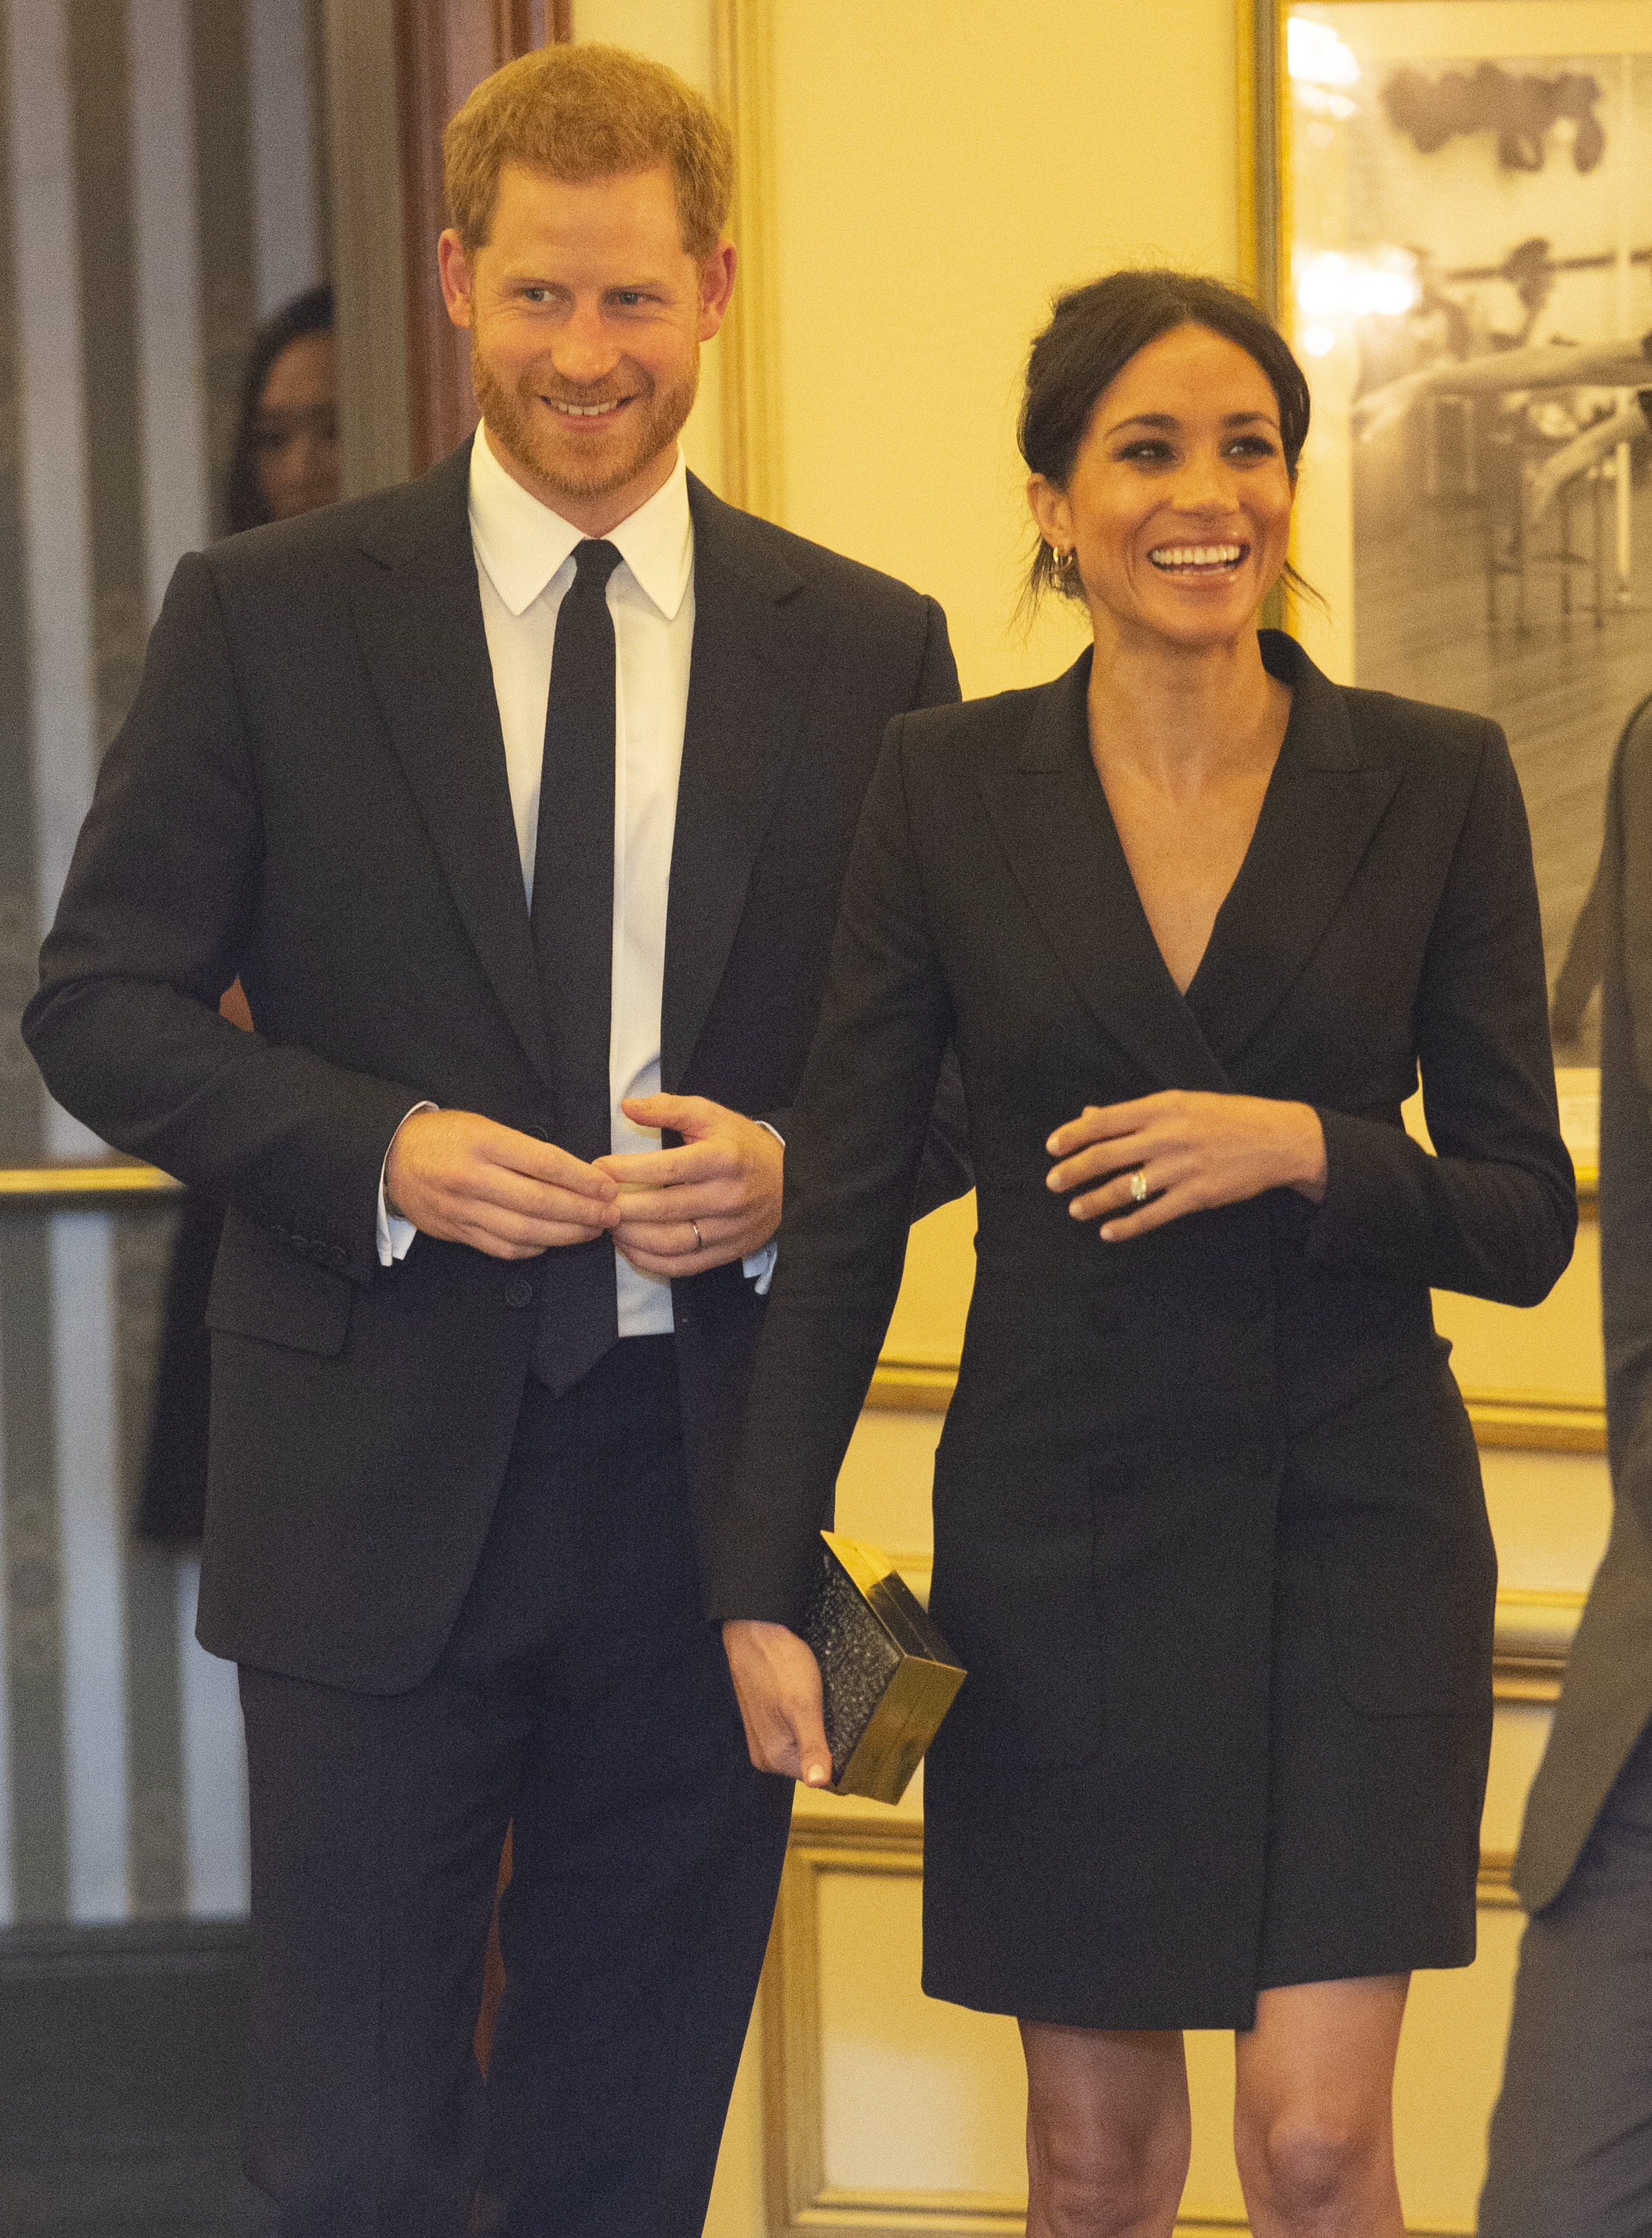 Prince Harry, Duke of Sussex and Meghan, Duchess of Sussex attend a gala performance of 'Hamilton' in support of Sentebale at Victoria Palace Theatre on August 29, 2018 in London, England.